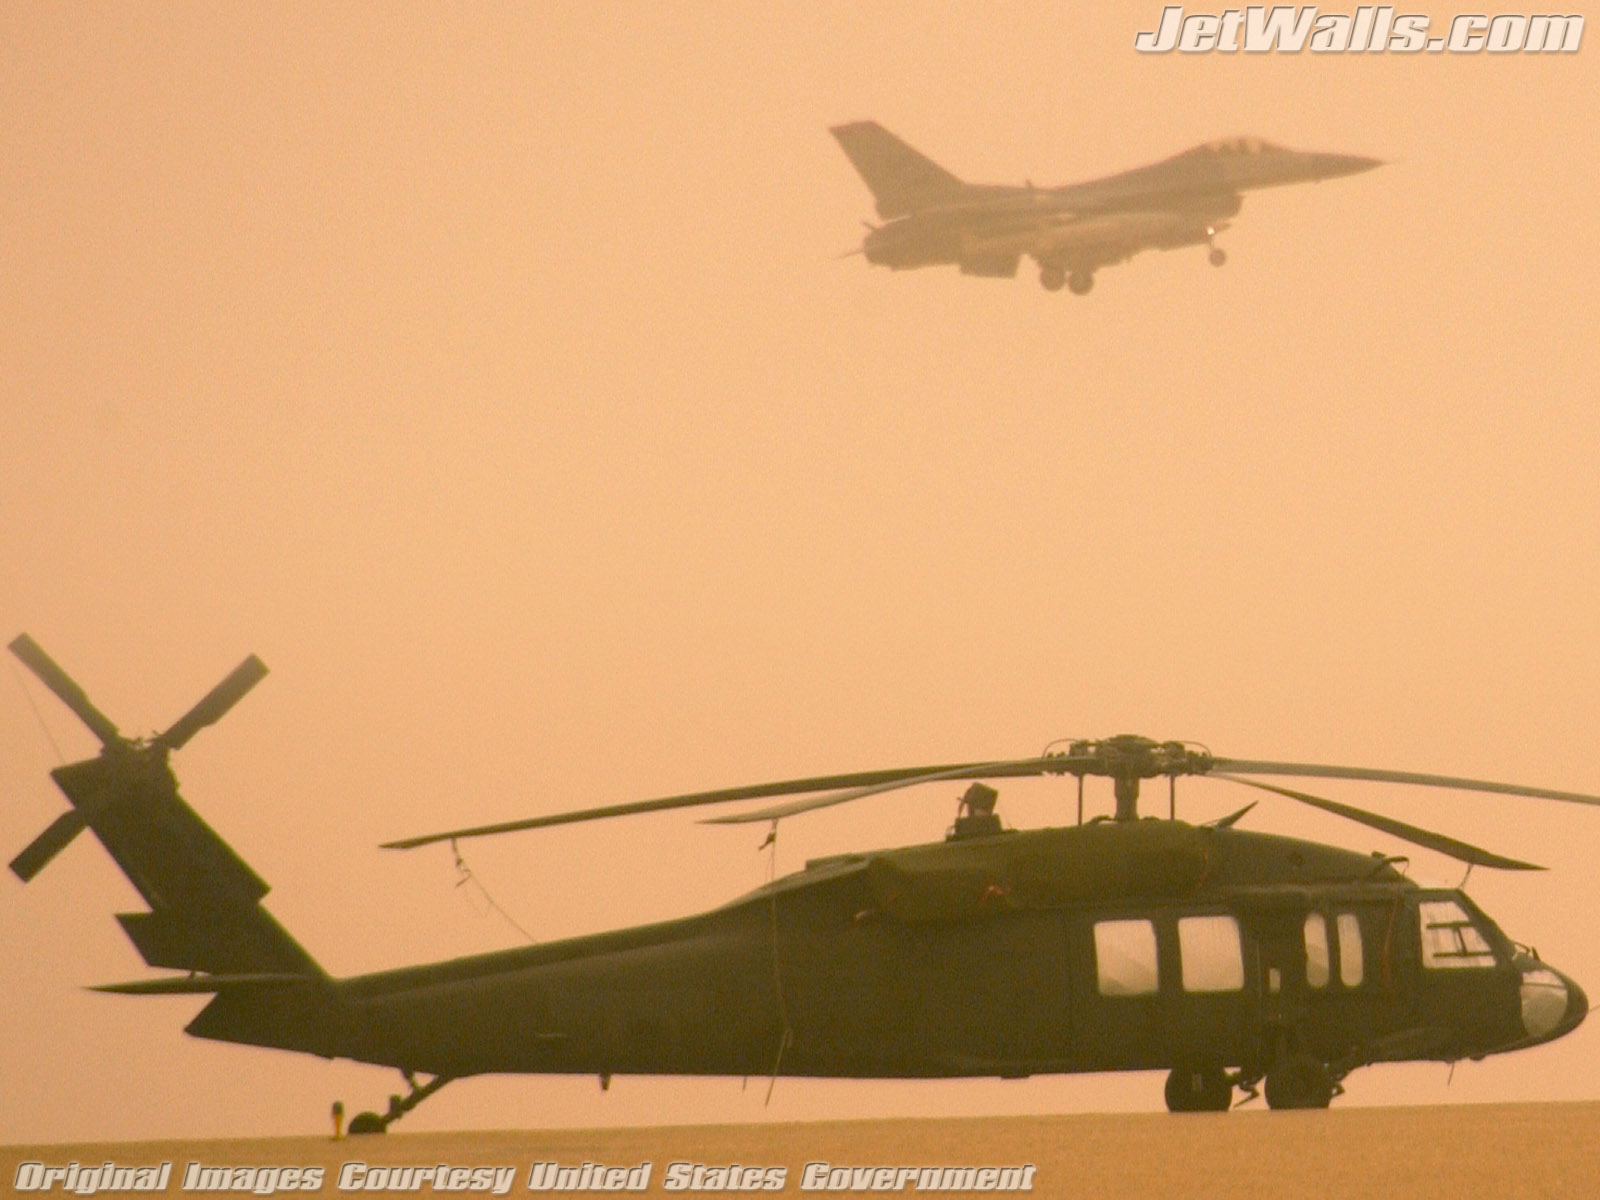 """Army Blackhawk Helicopter and F-16 Fighting Falcon"" - Wallpaper No. 94 of 101. Right click for saving options."